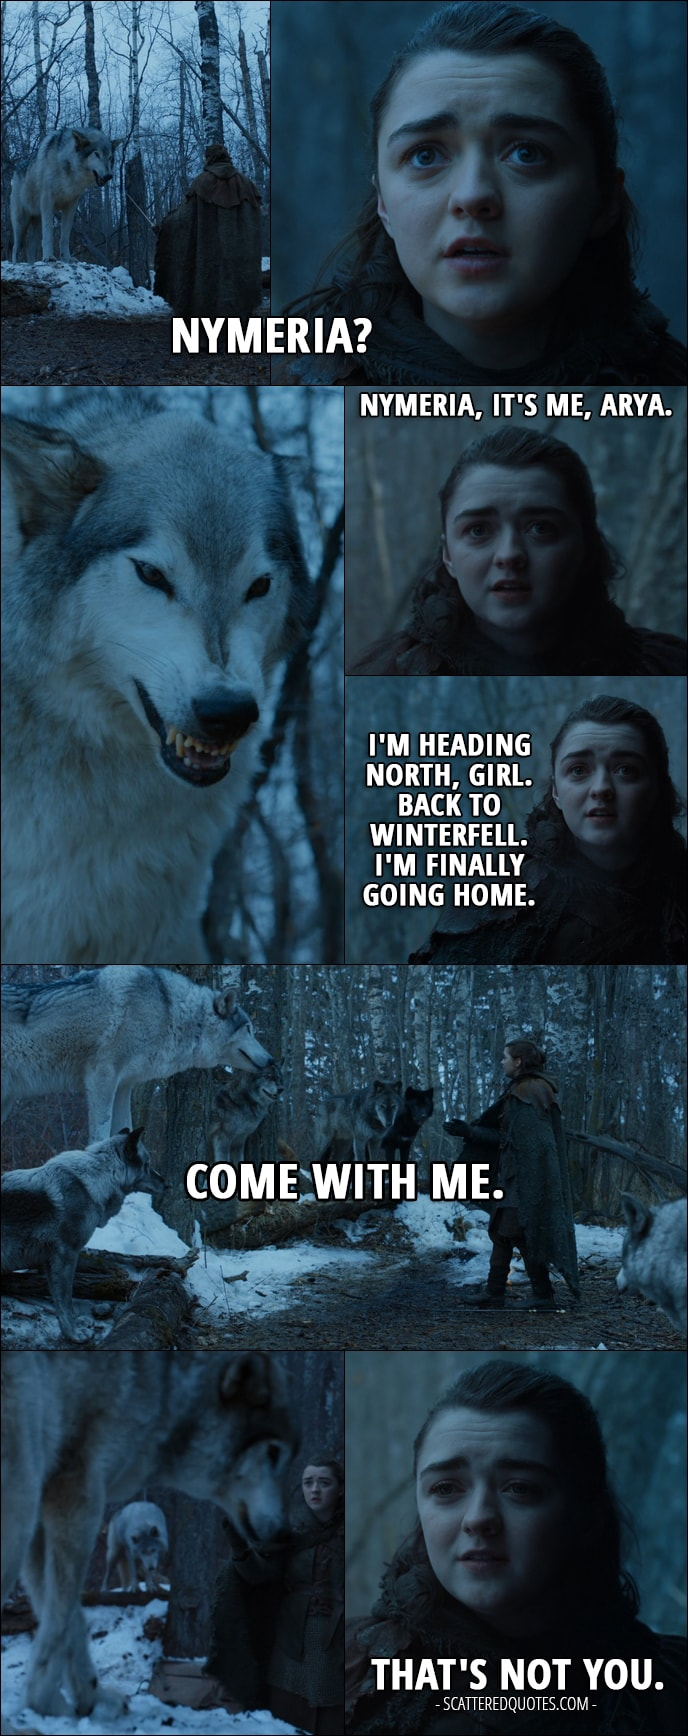 Quote from Game of Thrones 7x02 - Arya Stark: Nymeria? Nymeria, it's me, Arya. I'm heading north, girl. Back to Winterfell. I'm finally going home. Come with me. Come with me. That's not you.